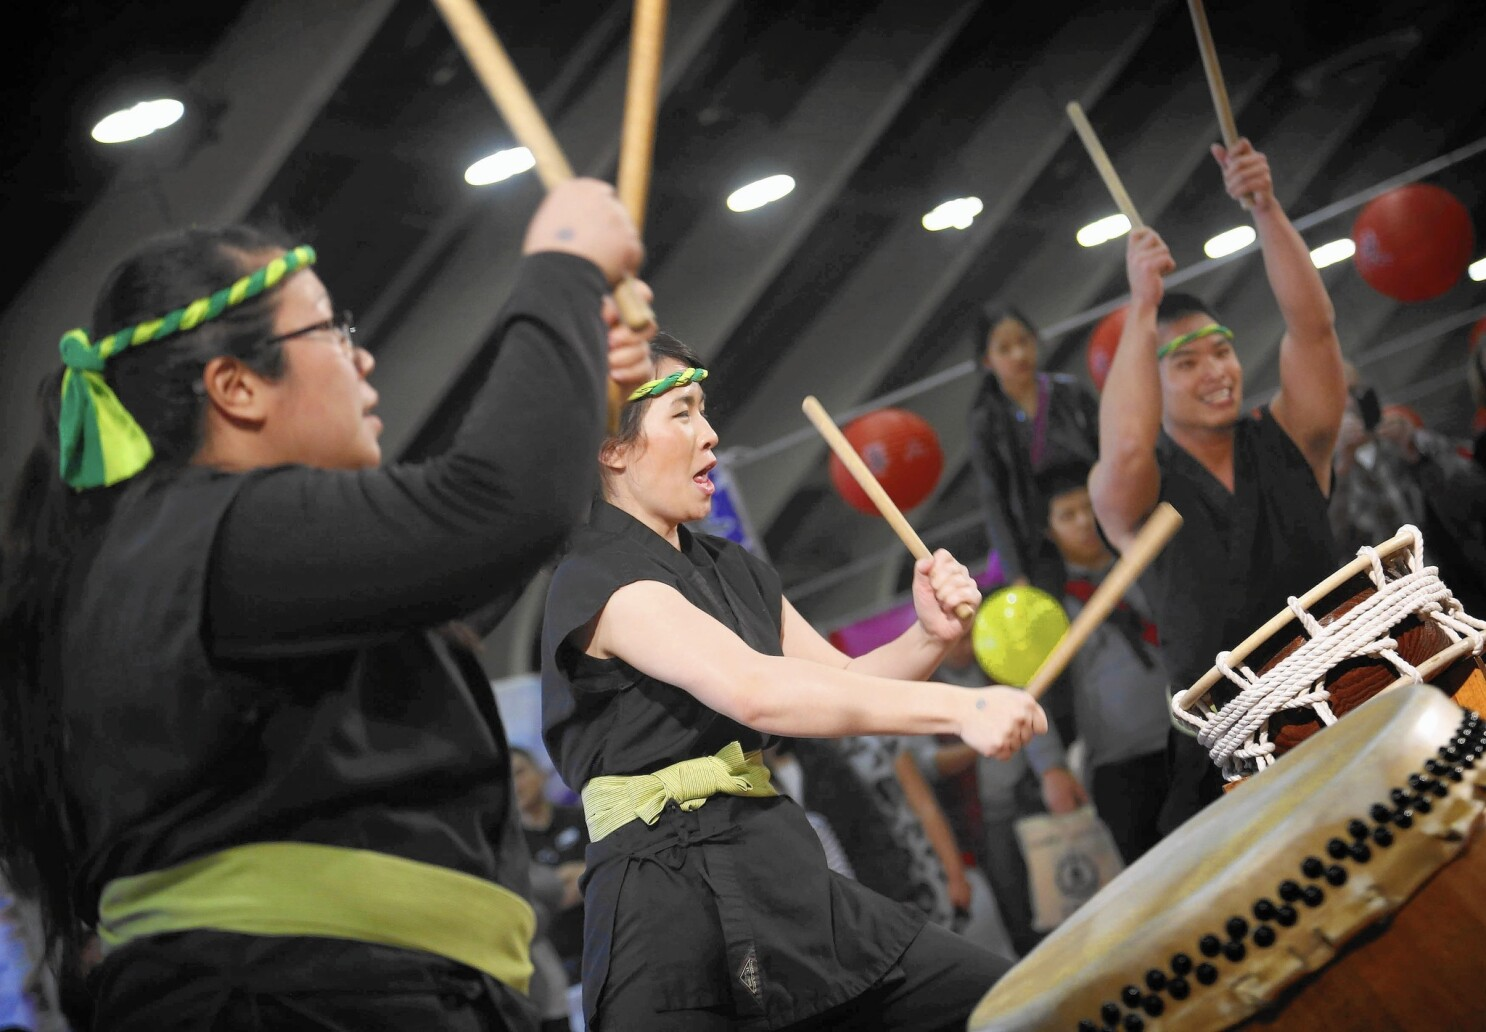 Why thousands flocked to Pomona Fairplex's 'Asian version of a